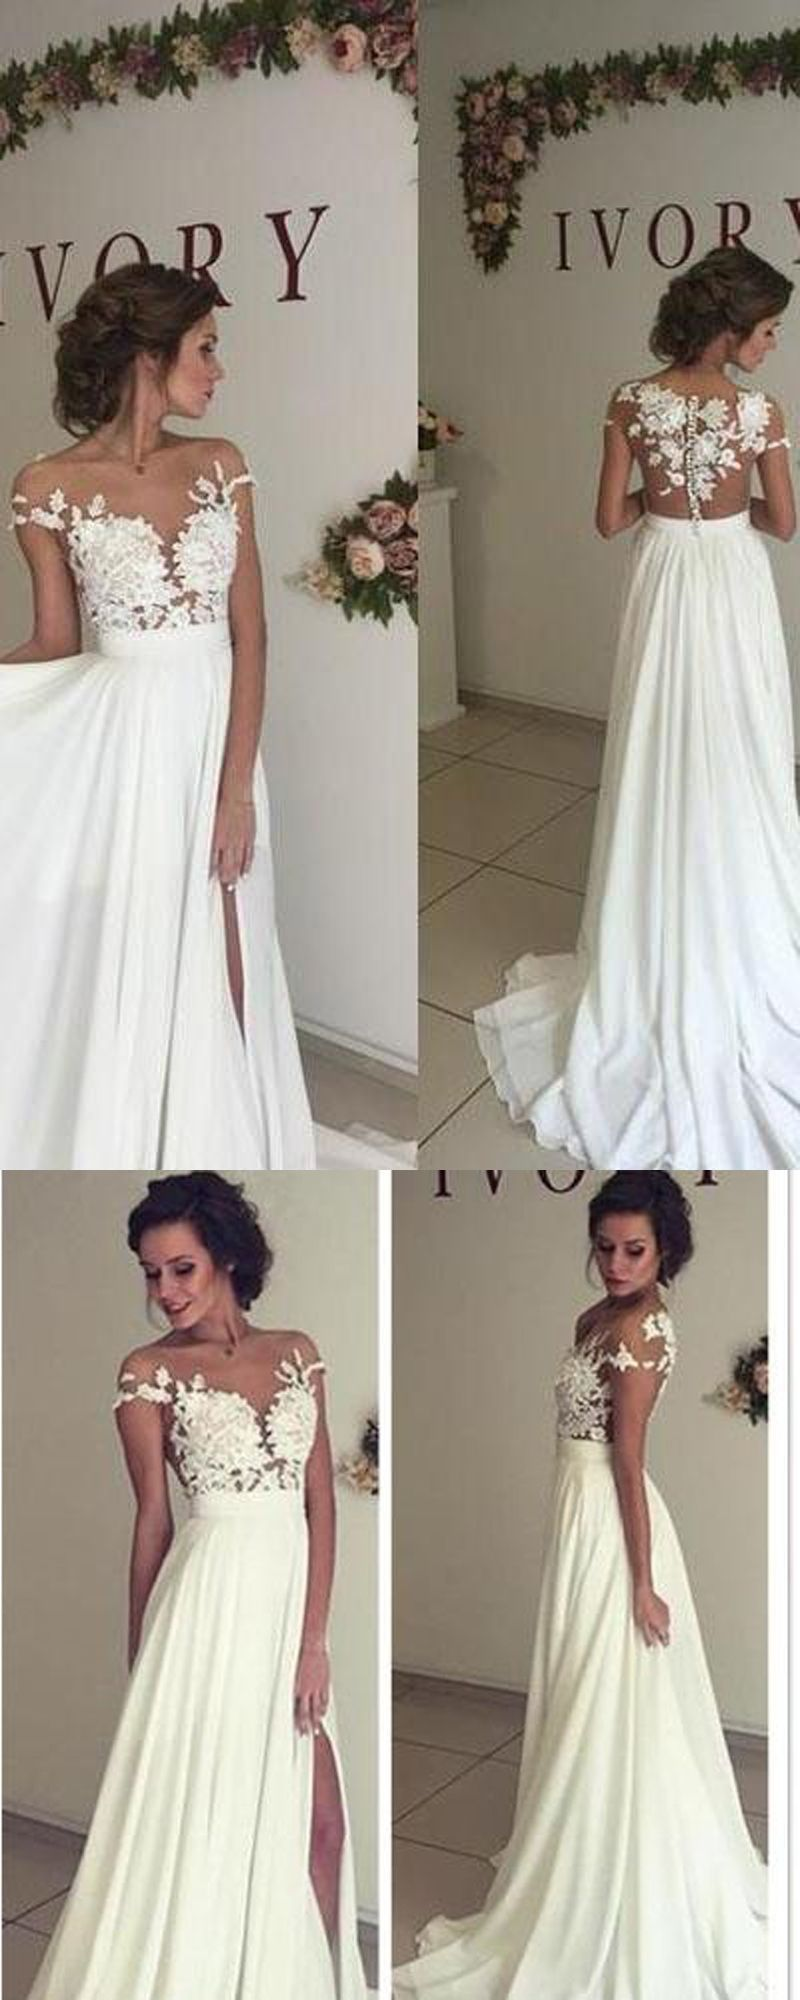 Chiffon wedding dresseslace wedding gownscharming wedding dress